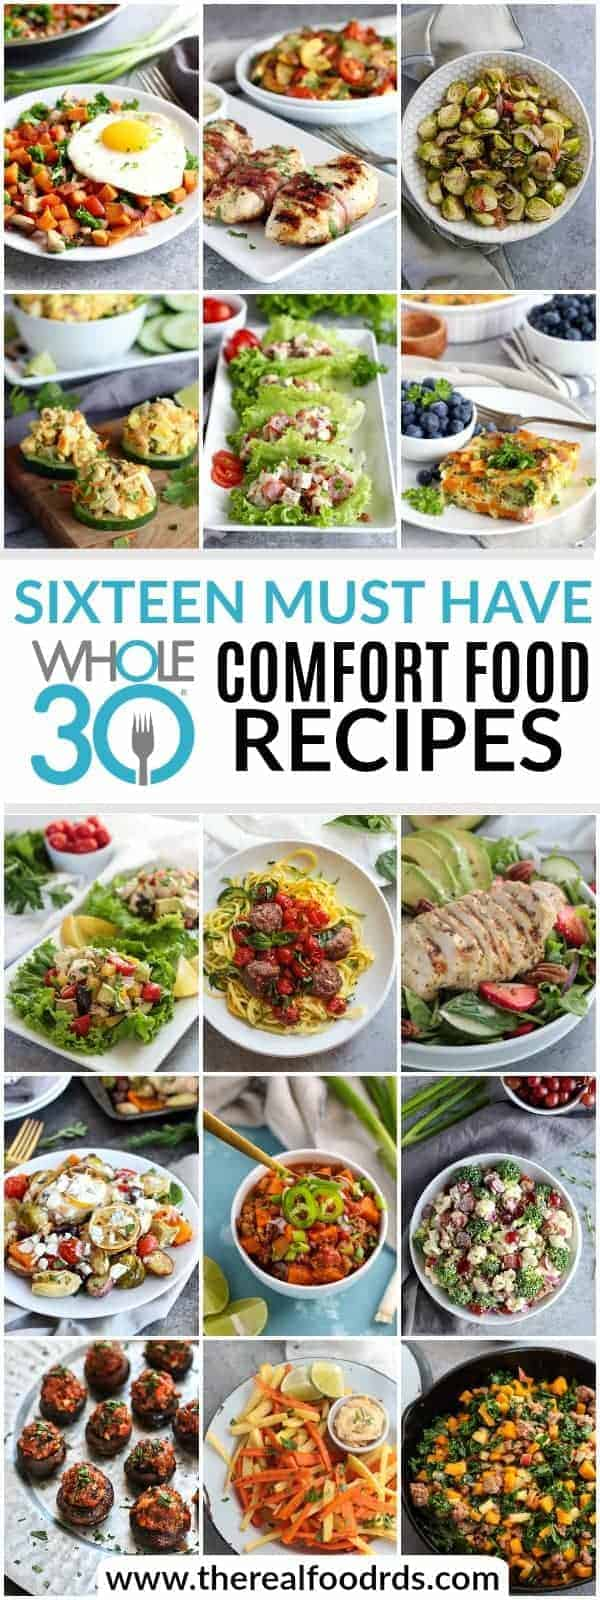 Free eBook! 16 Must-Have Whole30 Comfort Food Recipes